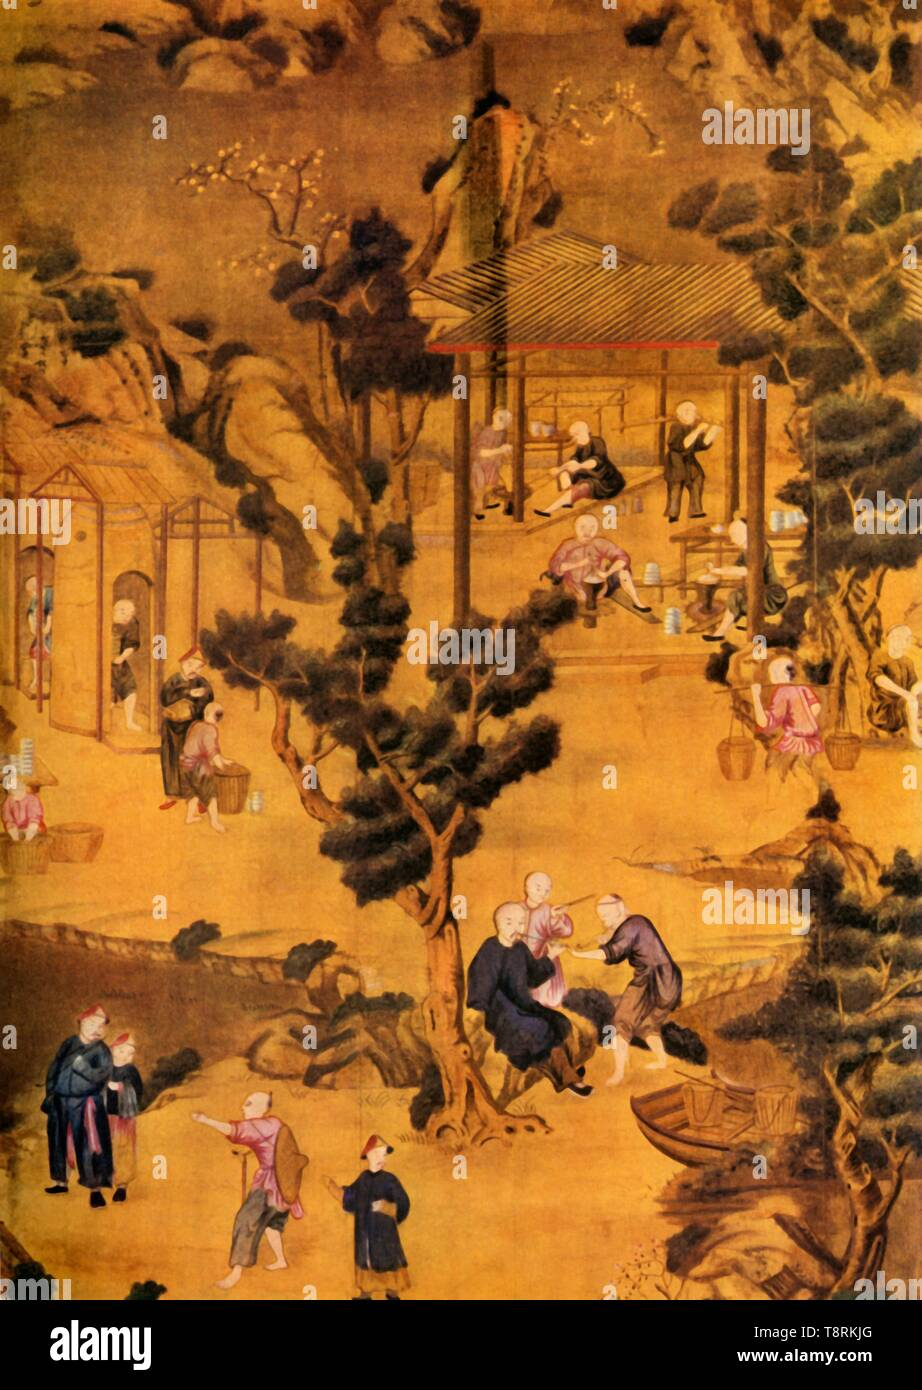 "'Chinese Wallpaper in Coutts' Bank', 18th century, (1934). 'Inspectors testing, sorting and storing rice, and a picnic party, travellers and a priest in the foreground'. Panel of Chinese wallpaper which was originally in Coutts Bank, Strand, London. From ""The Connoisseur"", Vol 93, No 389, January 1934. [The Connoisseur Ltd., London, 1934] - Stock Image"